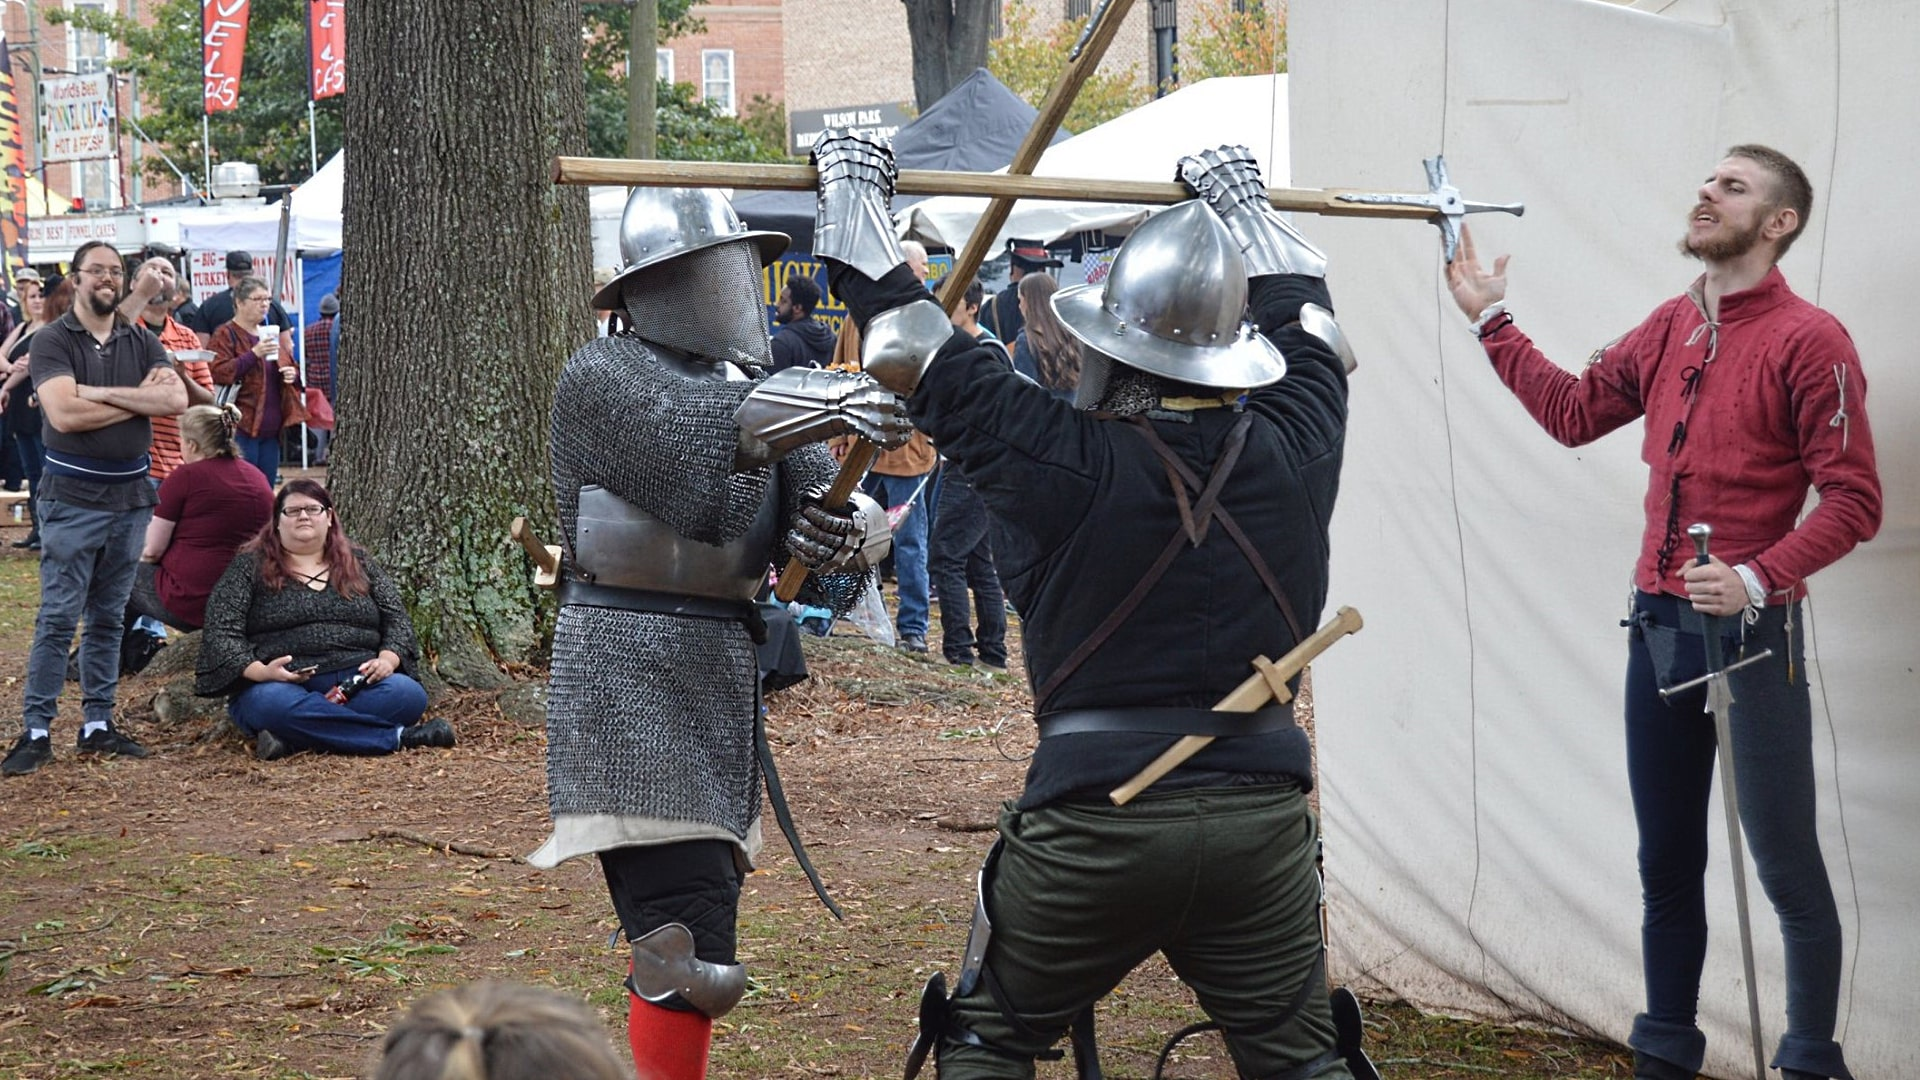 IMAGE: Demonstrating poleaxe at a faire